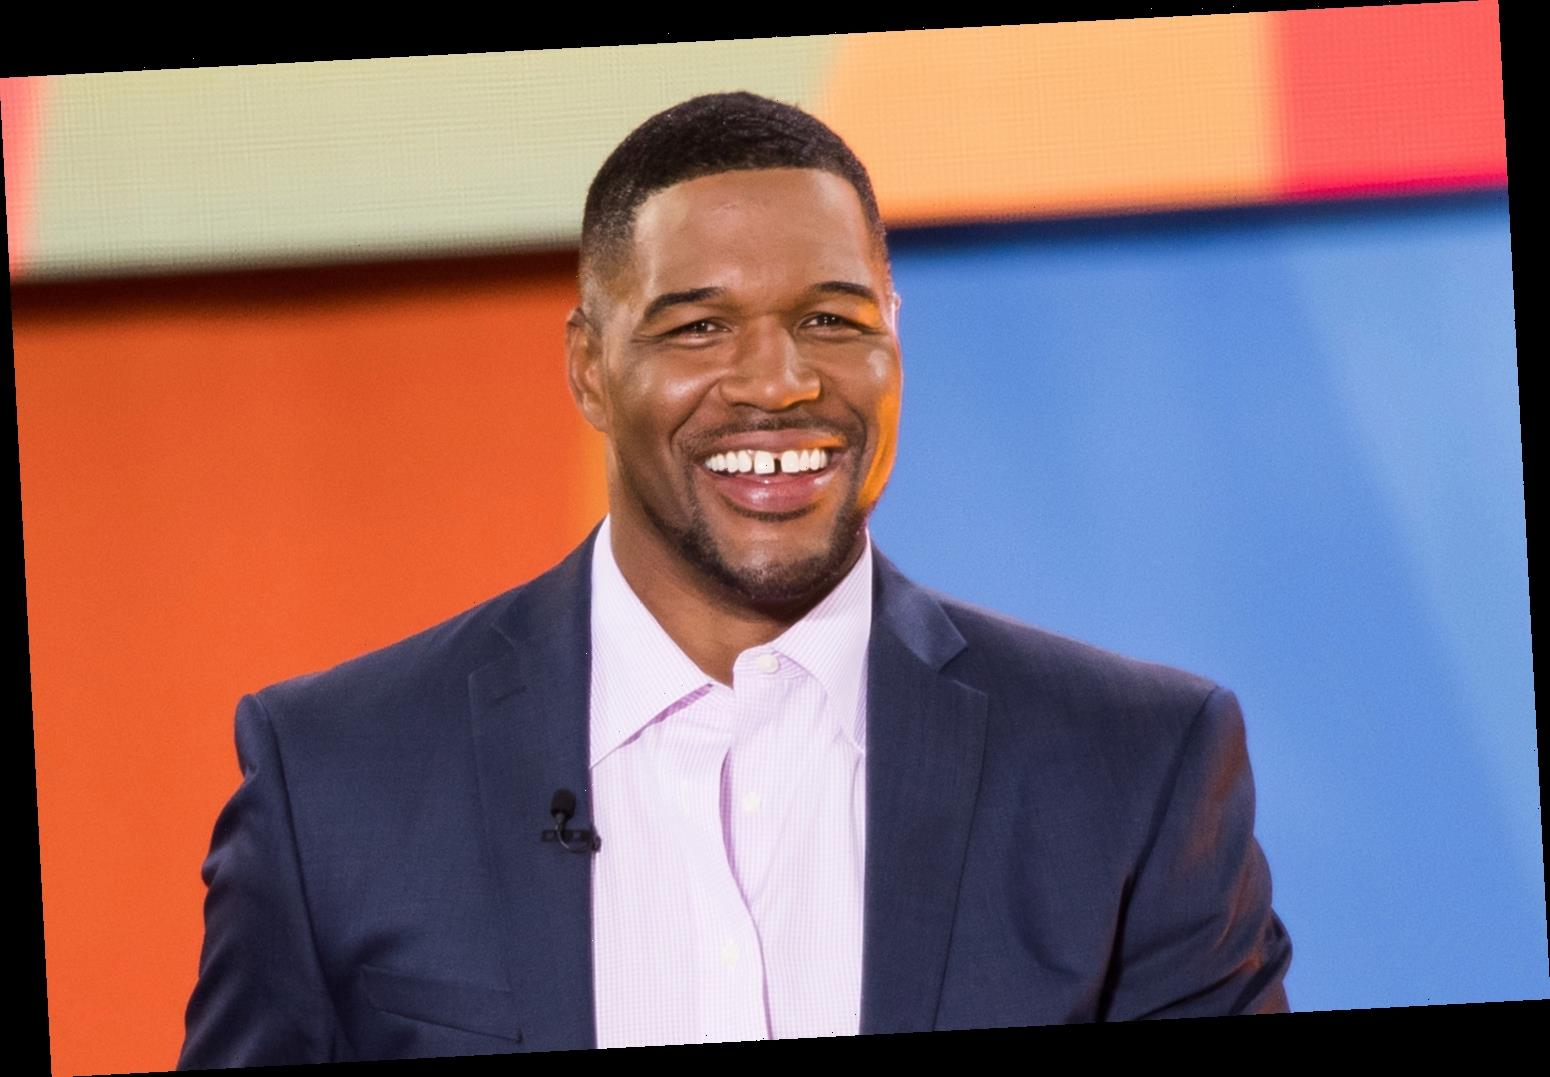 What is Michael Strahan's net worth?